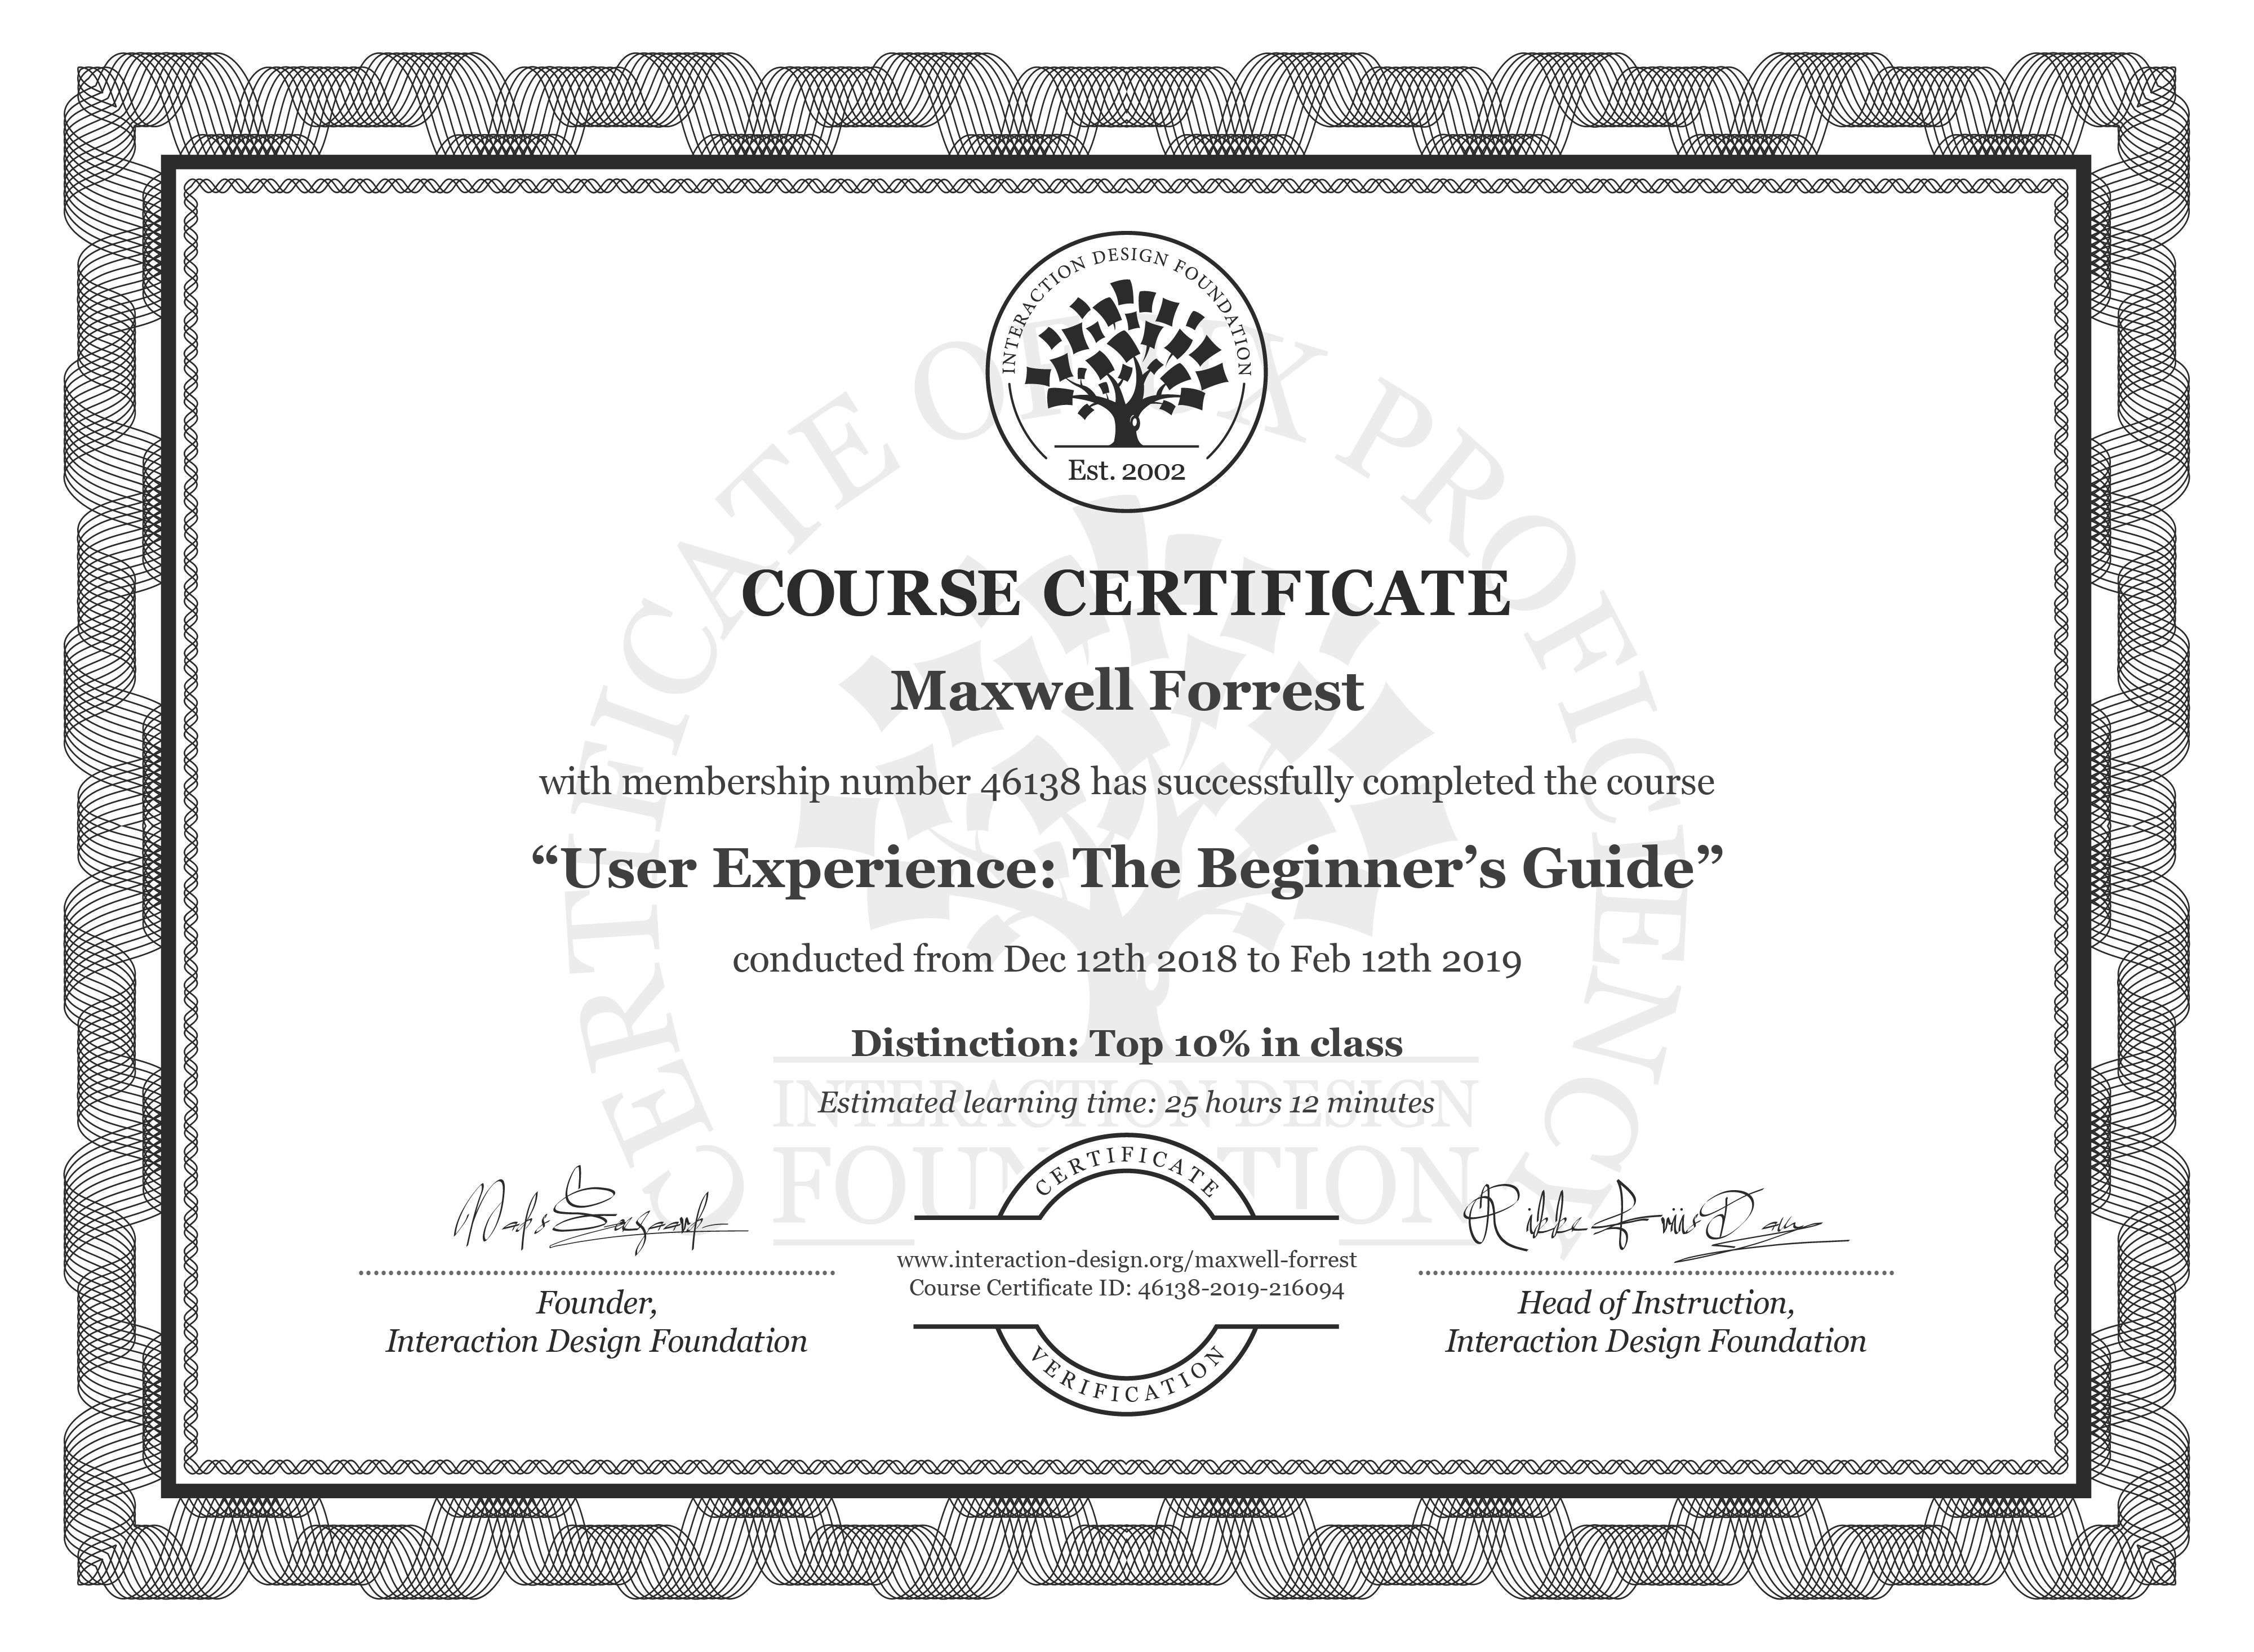 Maxwell Forrest: Course Certificate - Become a UX Designer from Scratch